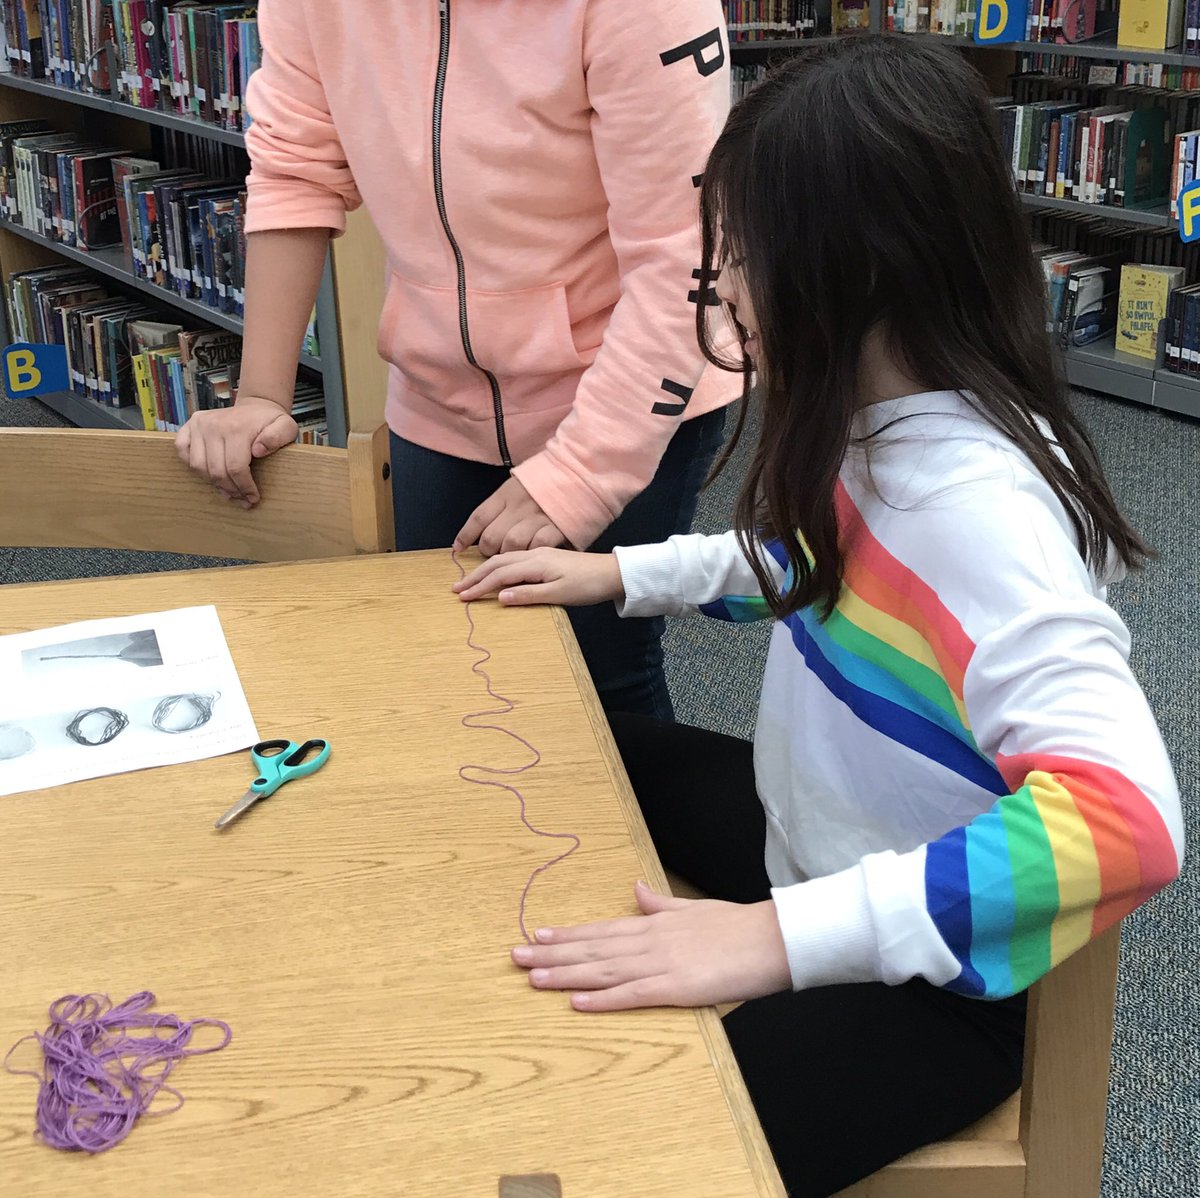 The Makerspace is officially open! We had our first Maker Lunch in the Library today with our 5th graders using embroidery floss to weave friendship bracelets. <a target='_blank' href='http://twitter.com/TechAtATS'>@TechAtATS</a> <a target='_blank' href='http://twitter.com/APSLibrarians'>@APSLibrarians</a> <a target='_blank' href='https://t.co/Z9DOM1YqHF'>https://t.co/Z9DOM1YqHF</a>